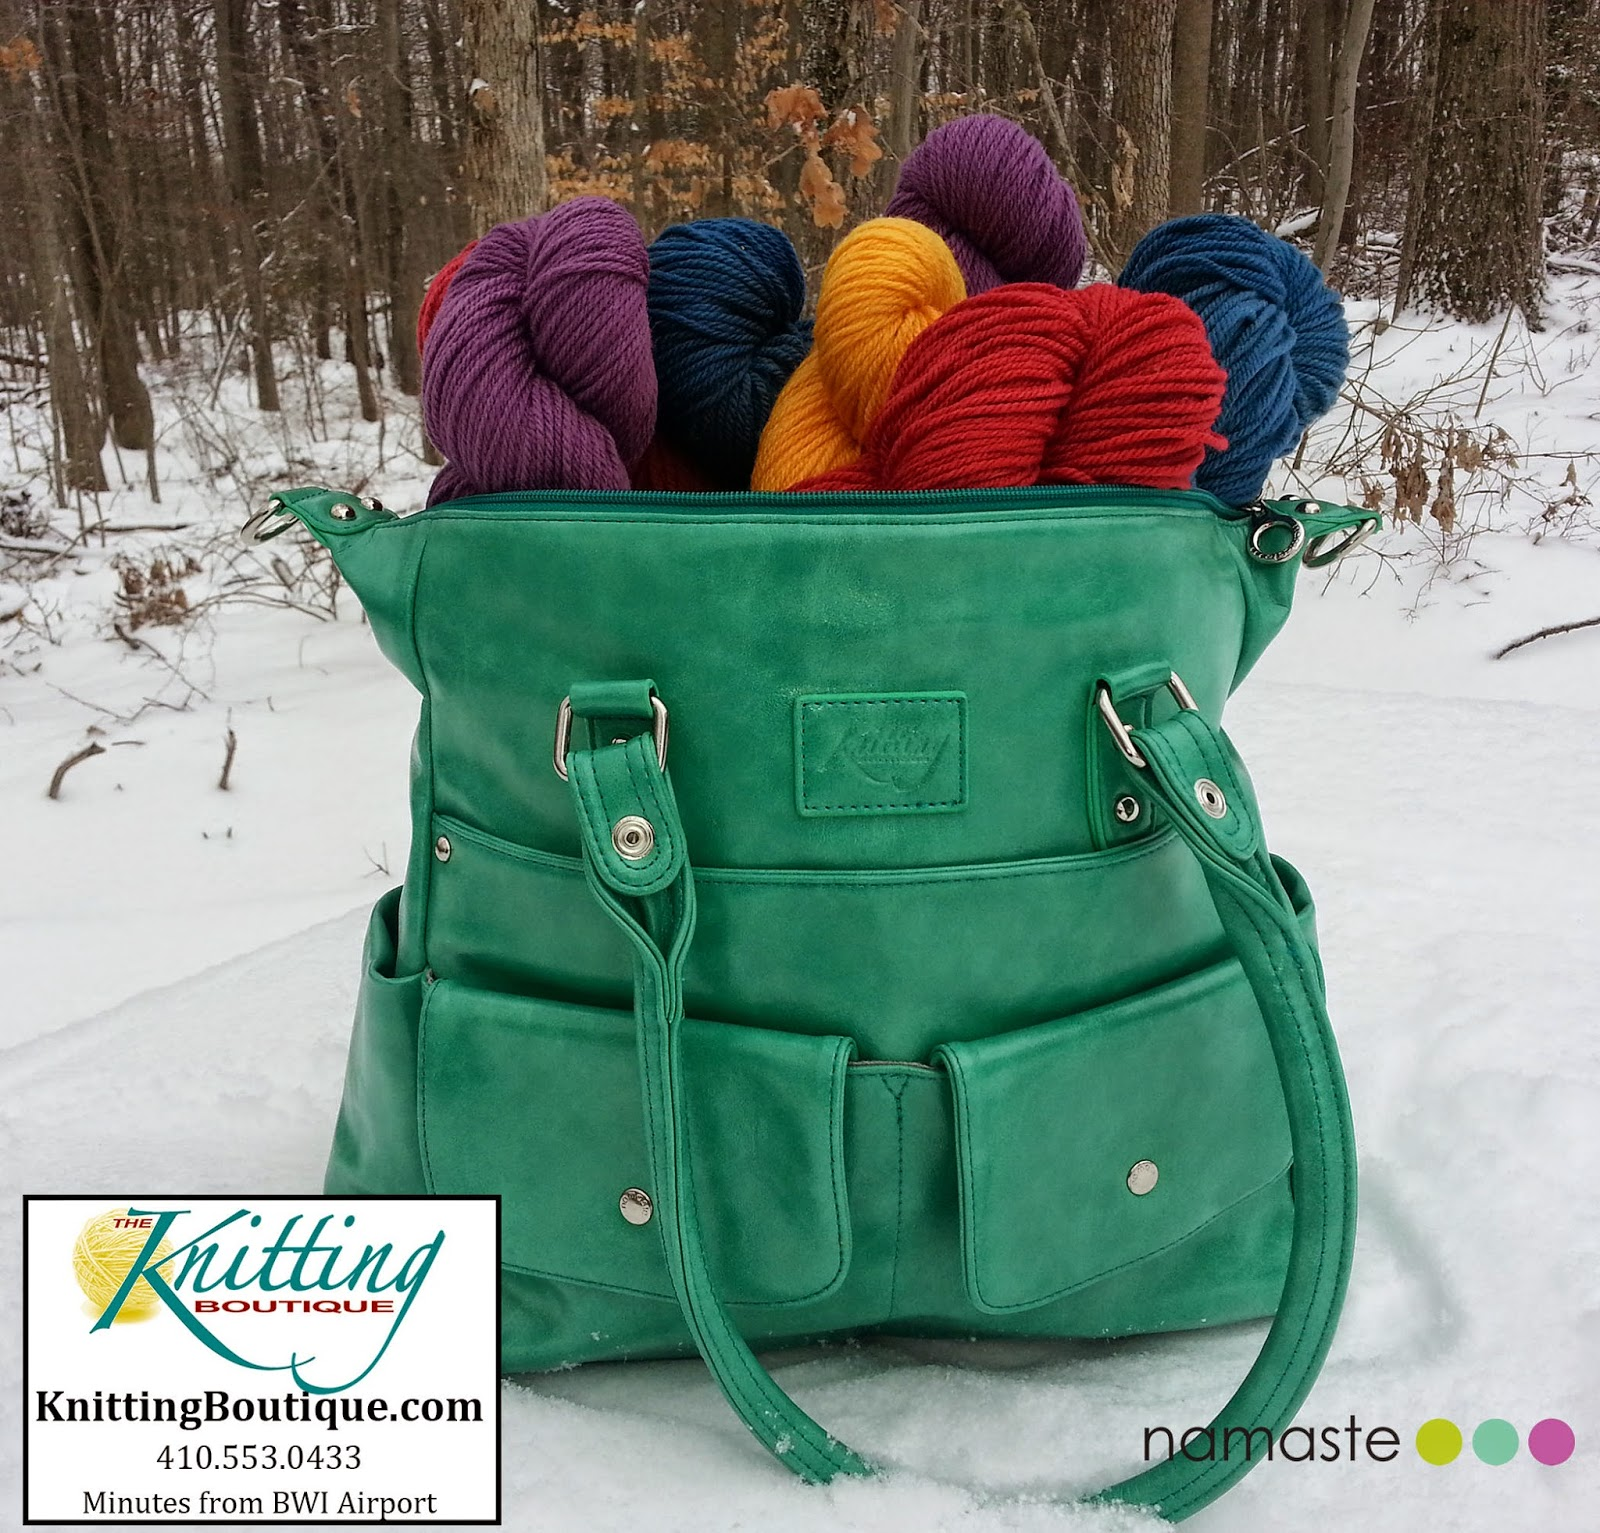 Namaste bag stuffed with wool from the Knitting Boutique